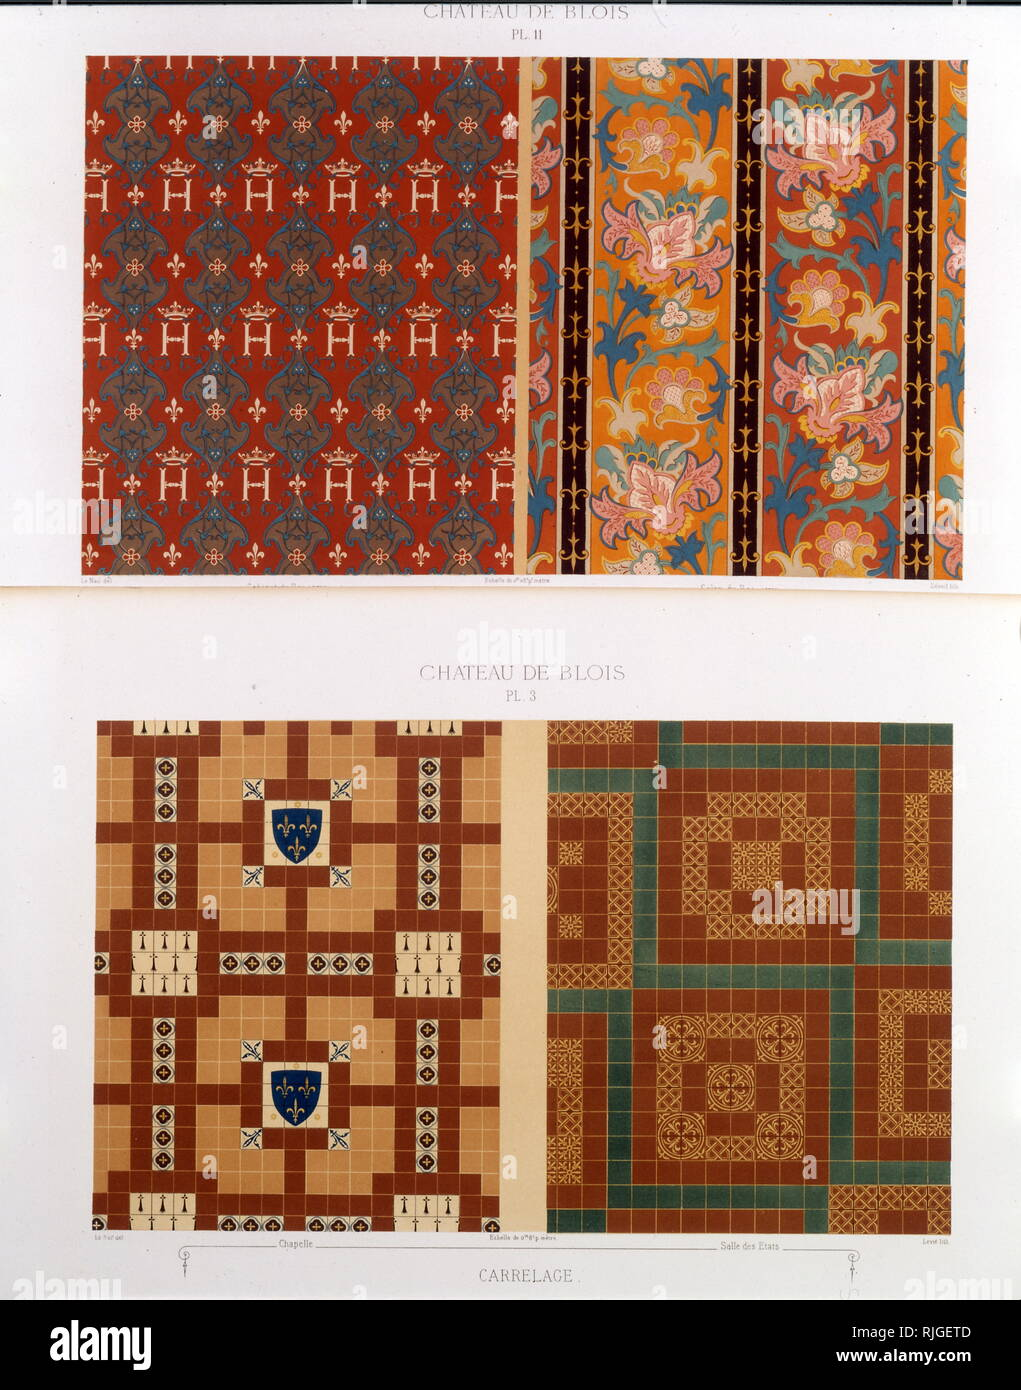 Page of designs for tiles used in the Chateau of Blois, France. The Chateau de Blois, a Renaissance chateau was once occupied by King Louis XII, - Stock Image